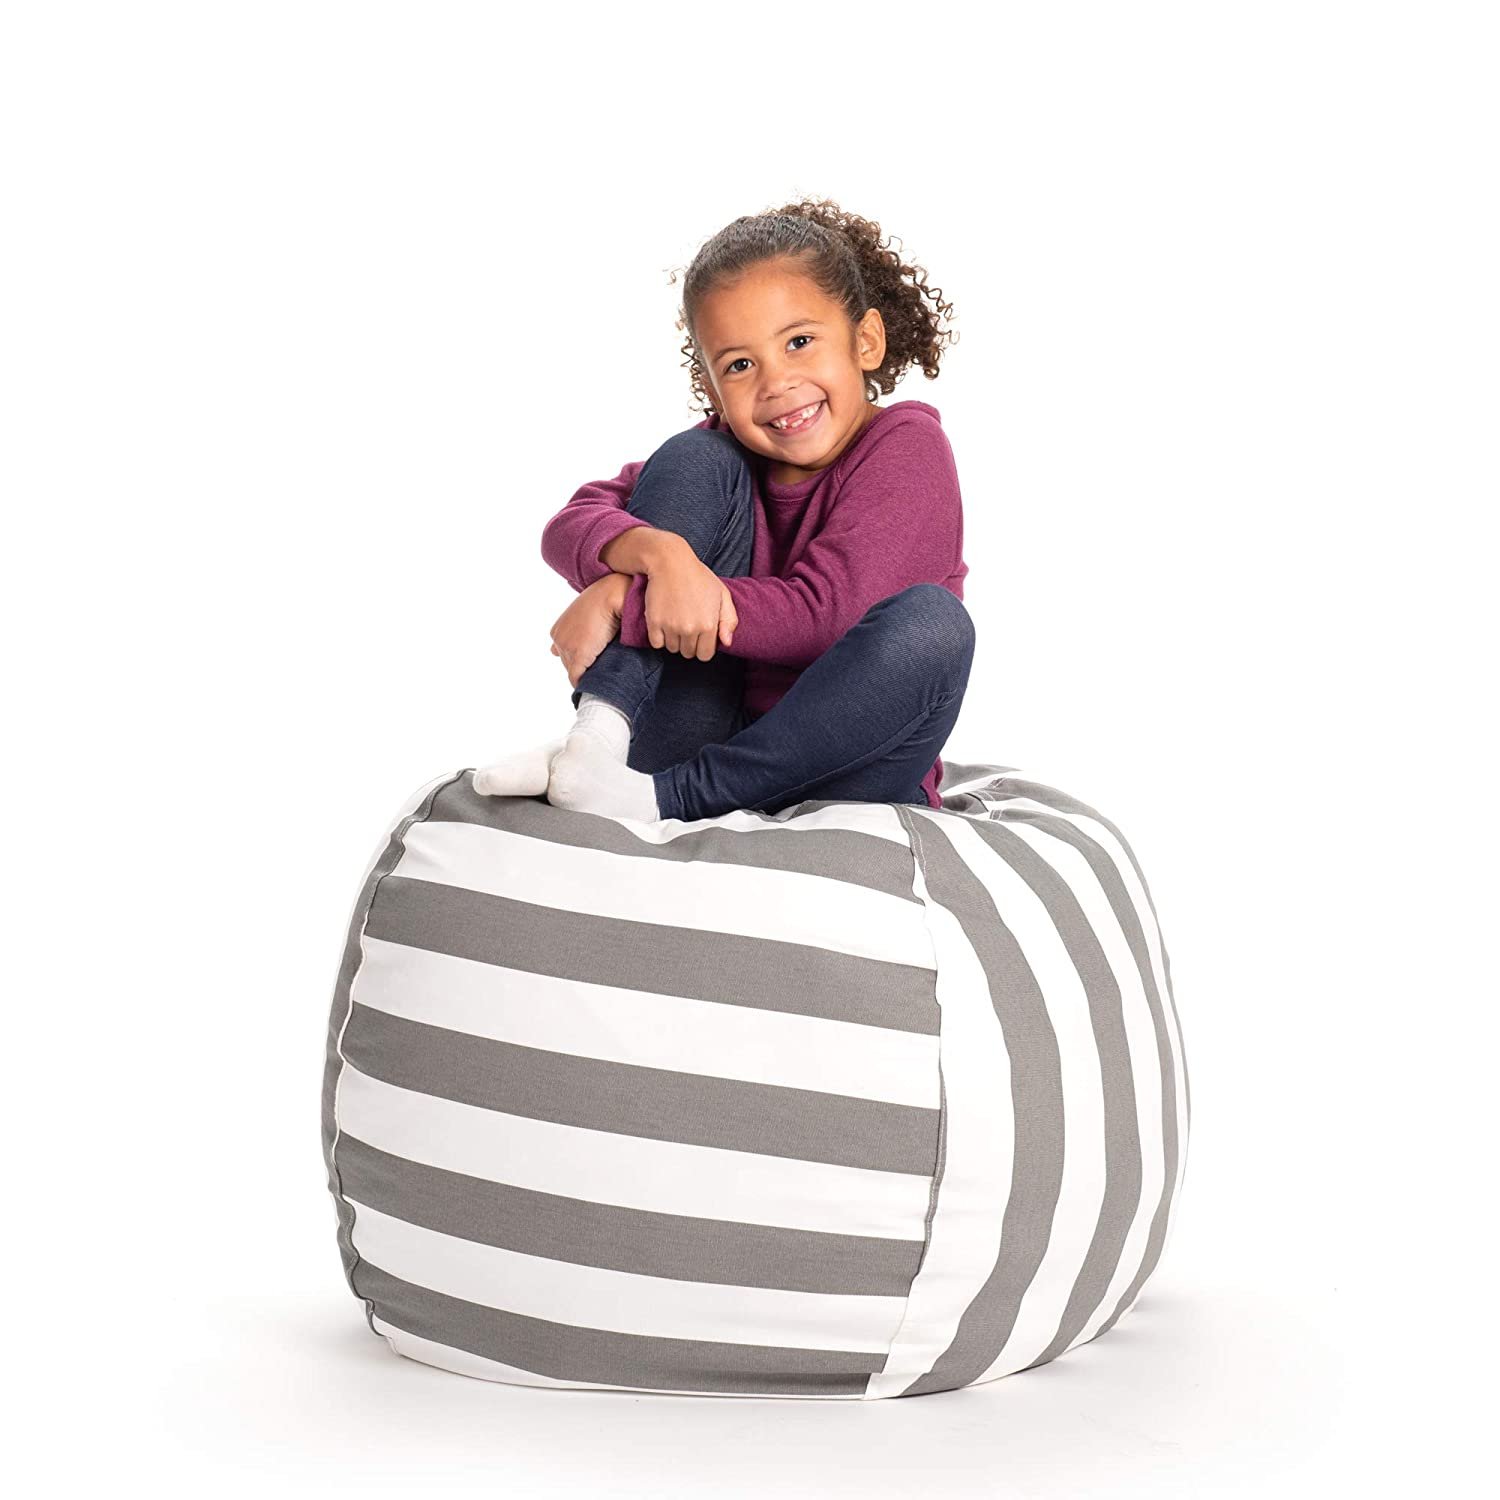 Creative QT Stuffed Animal Storage Bean Bag Chair - Large Stuff 'n Sit Organization for Kids Toy Storage - Available in a Variety of Sizes and Colors (33